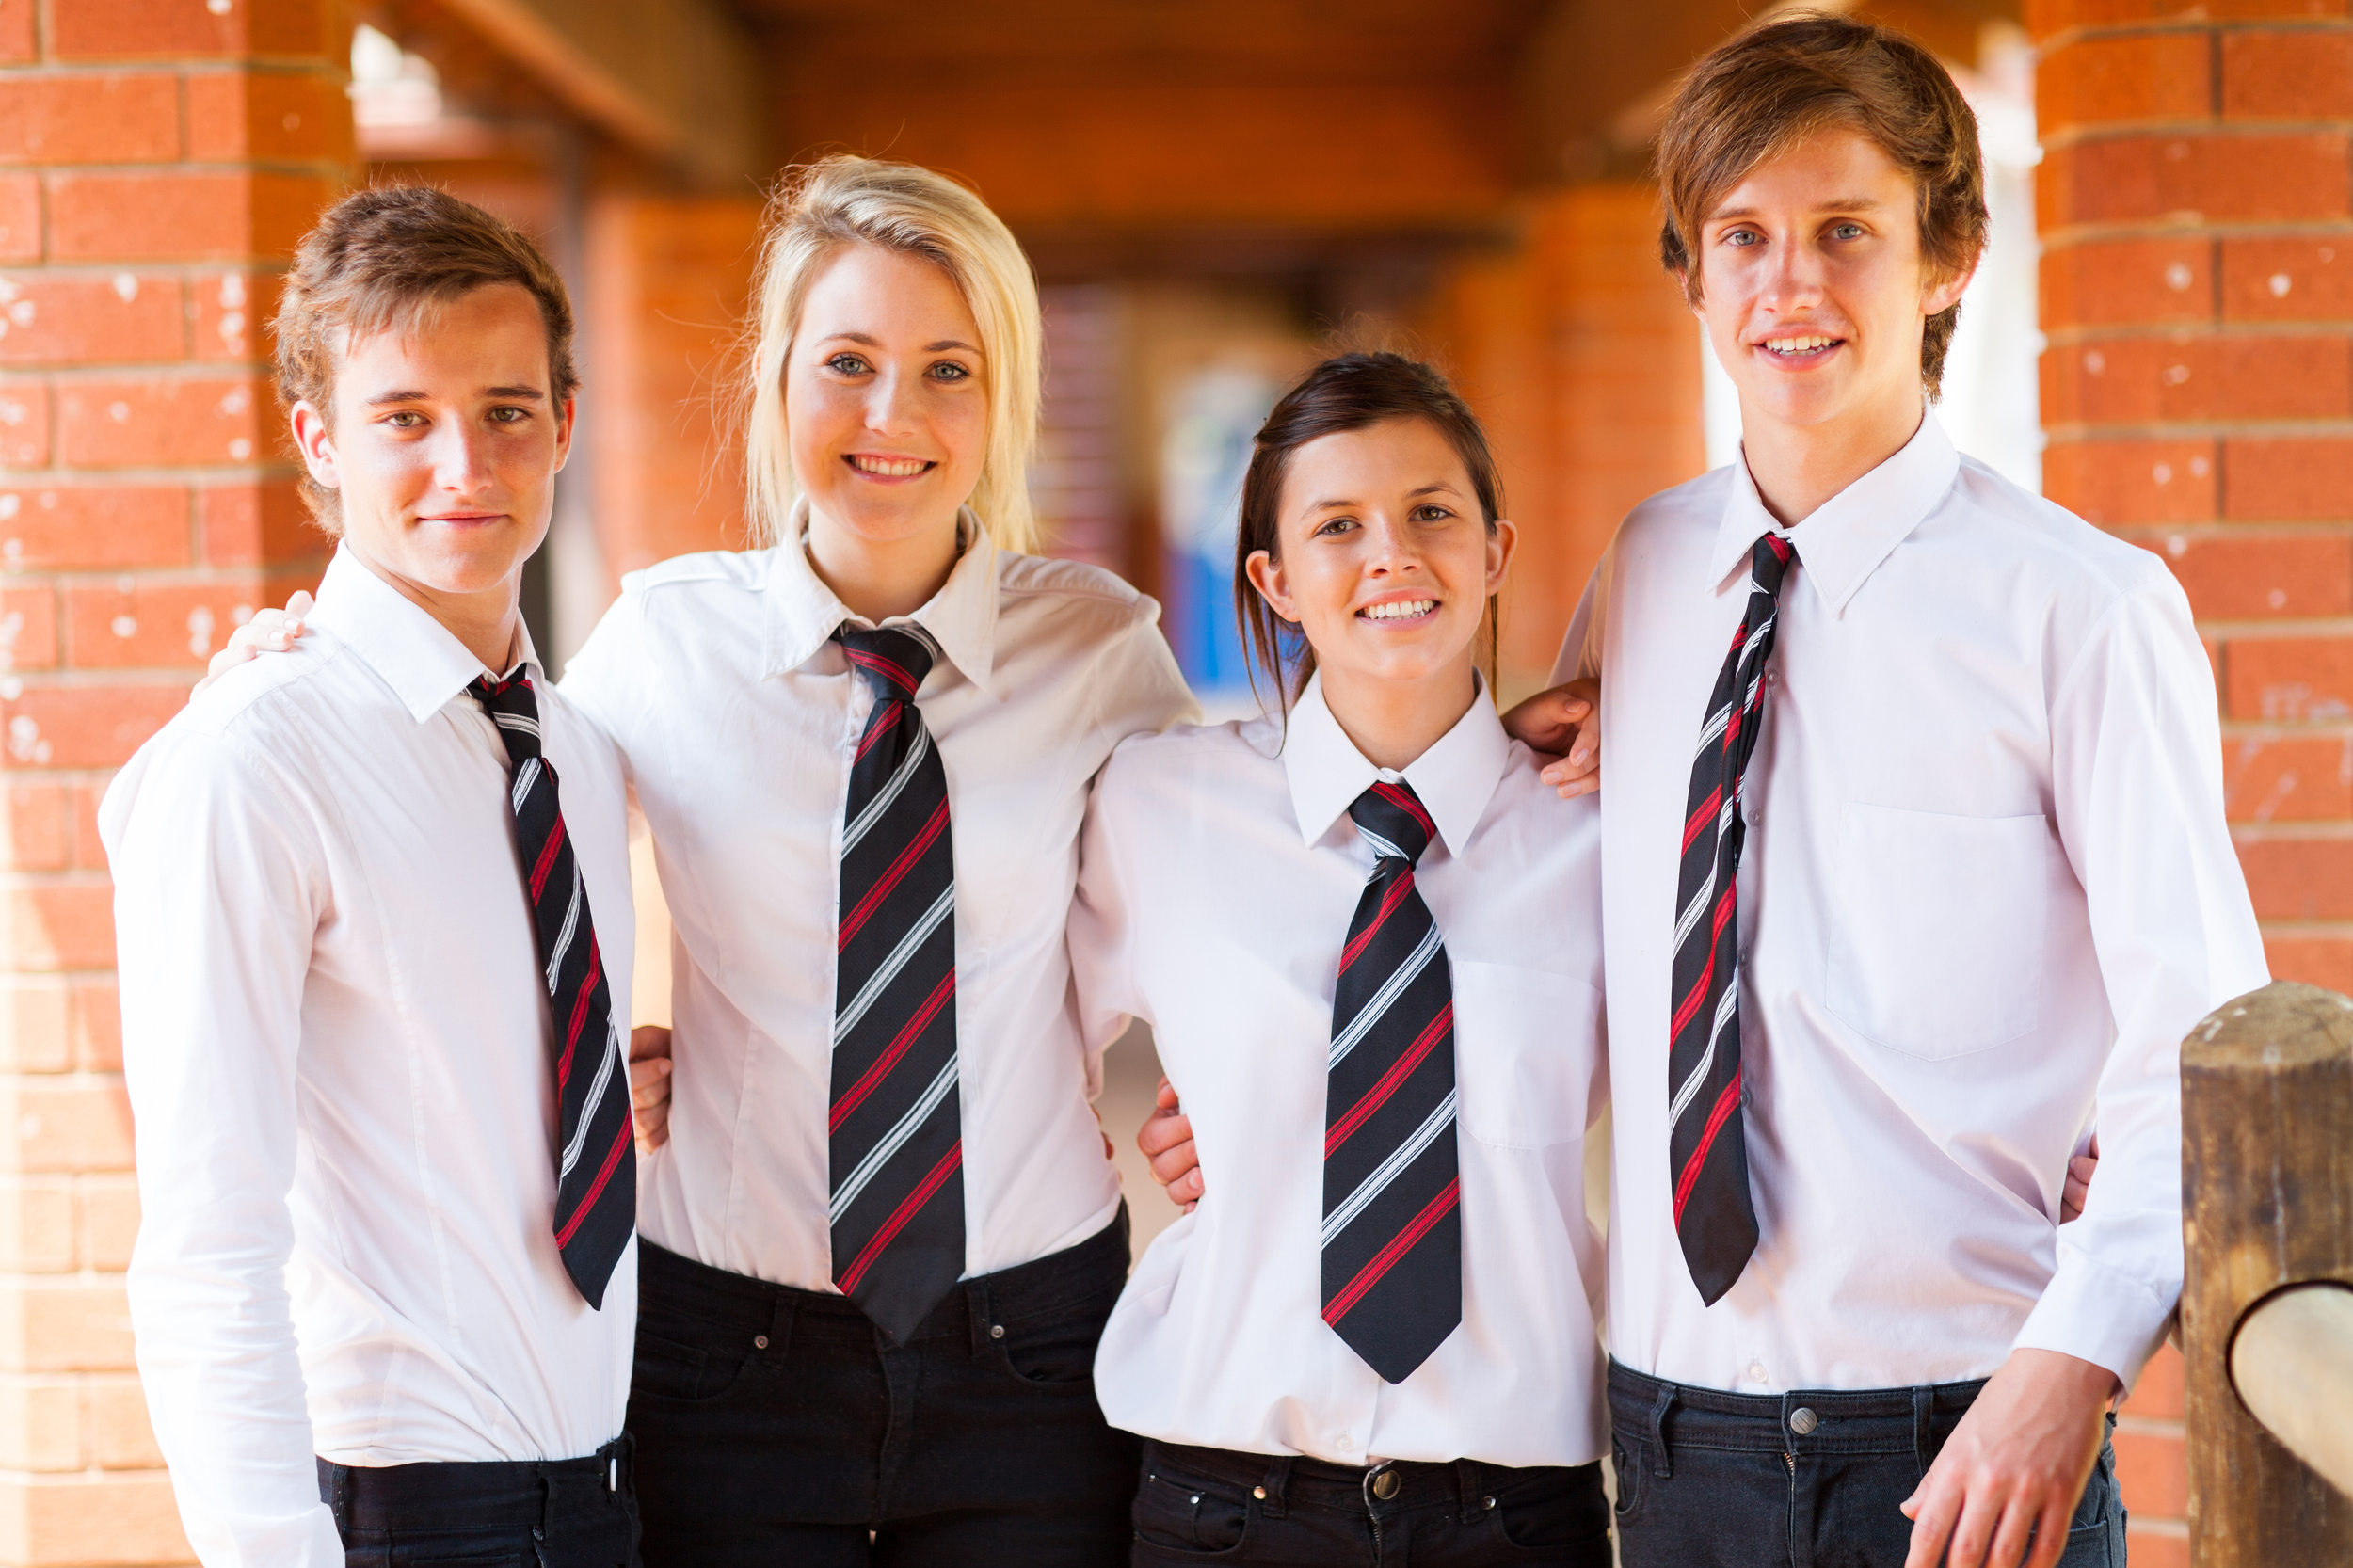 pros and cons of wearing school Here are some of the other pros and cons of school uniforms to think about list of the pros of school uniforms 1 it encourages discipline whether we like to admit it or not, most people.